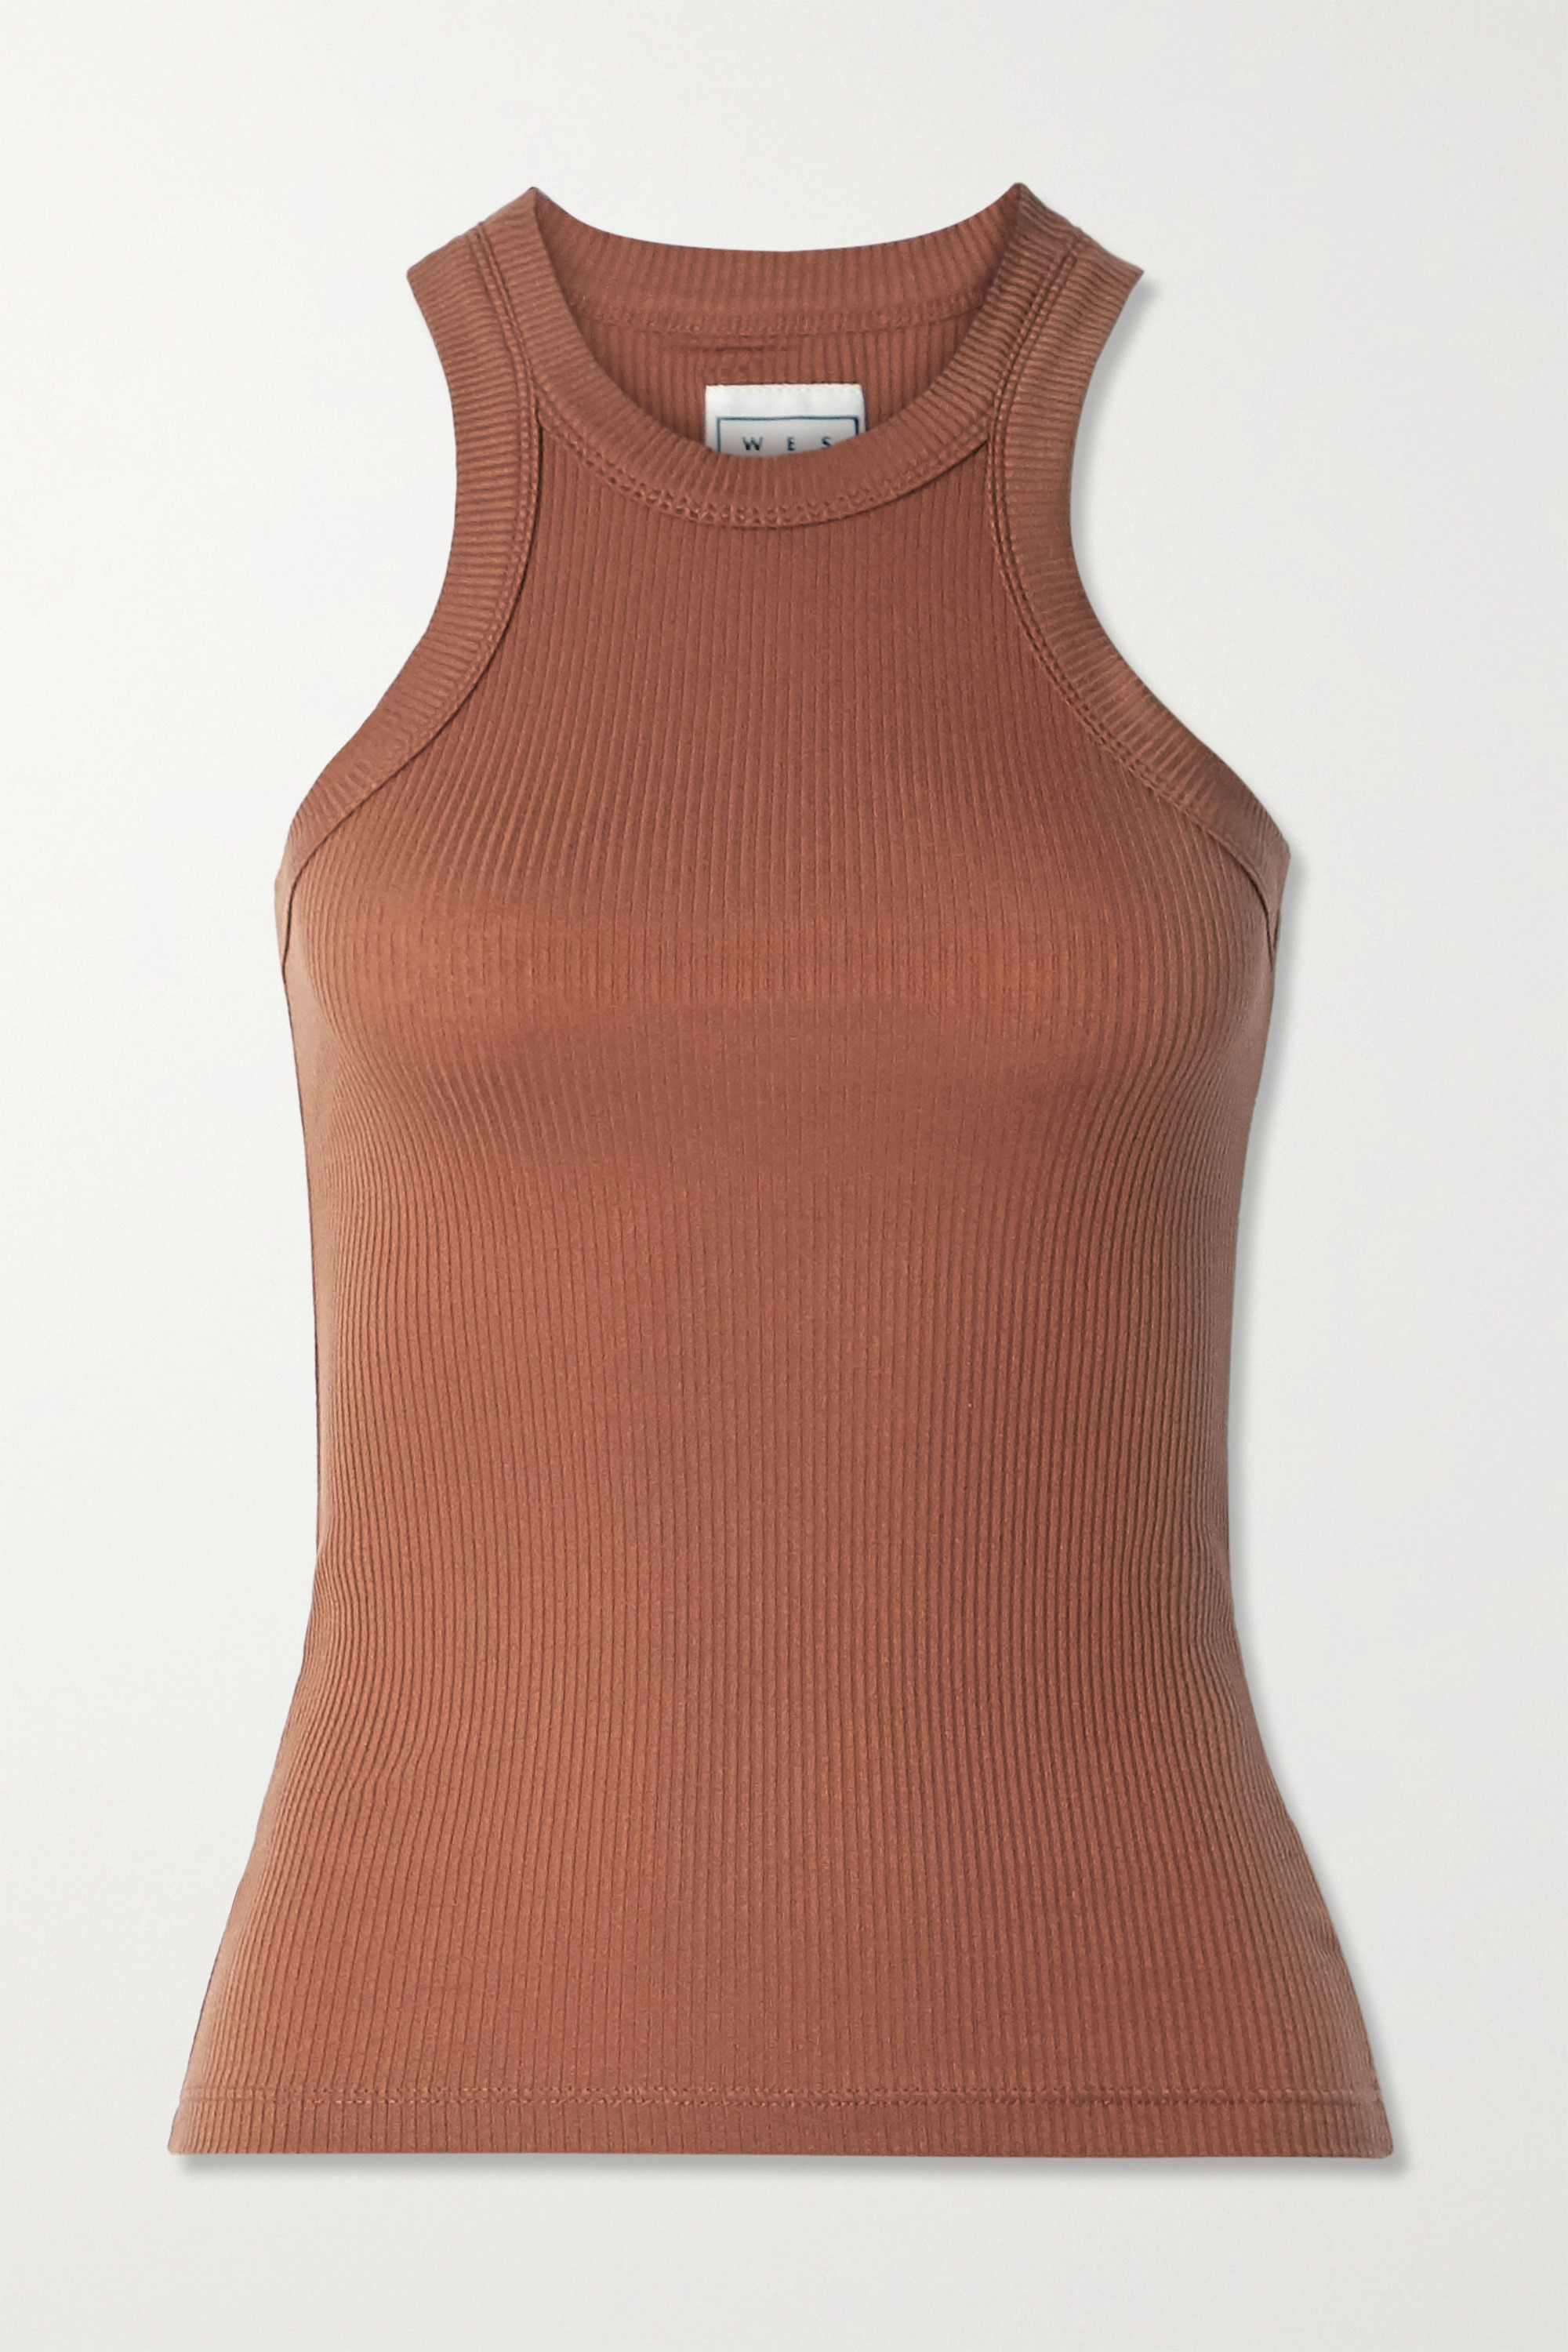 WSLY The Rivington ribbed stretch-TENCEL Lyocell tank